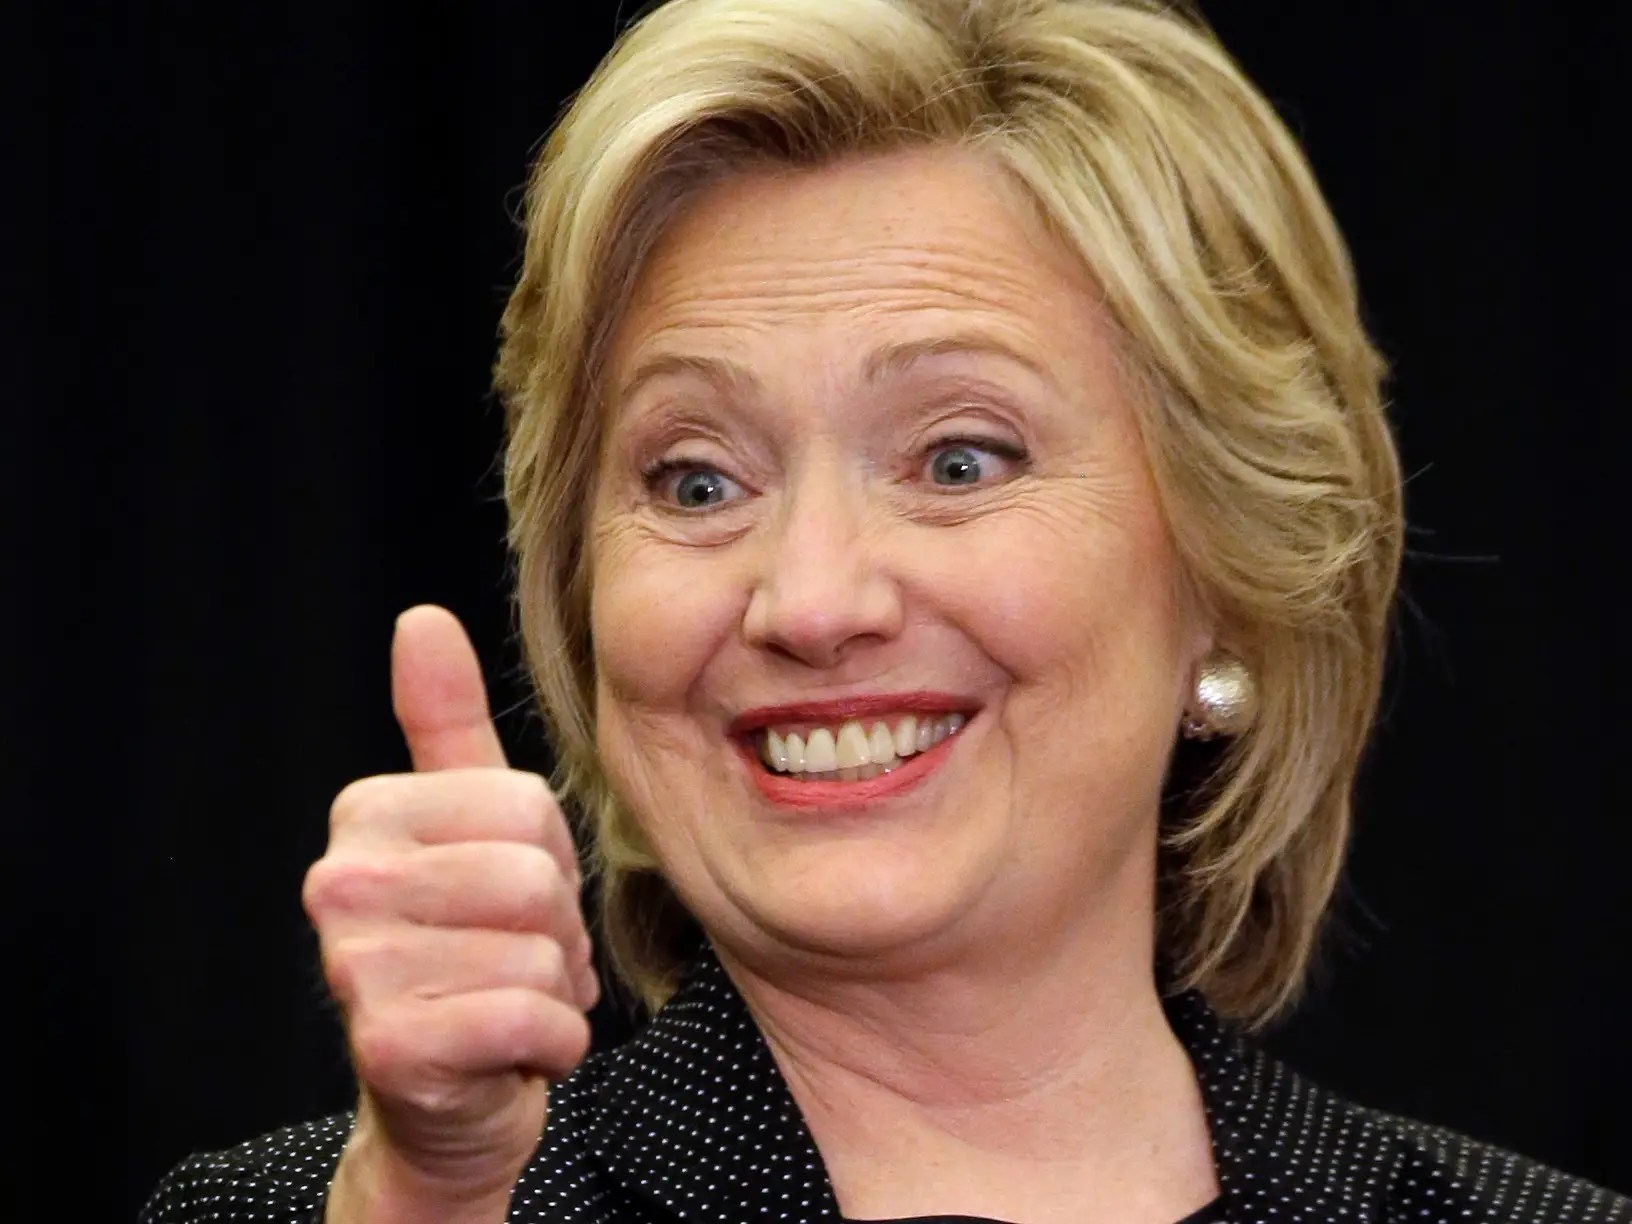 Hillary Clinton thumbs up